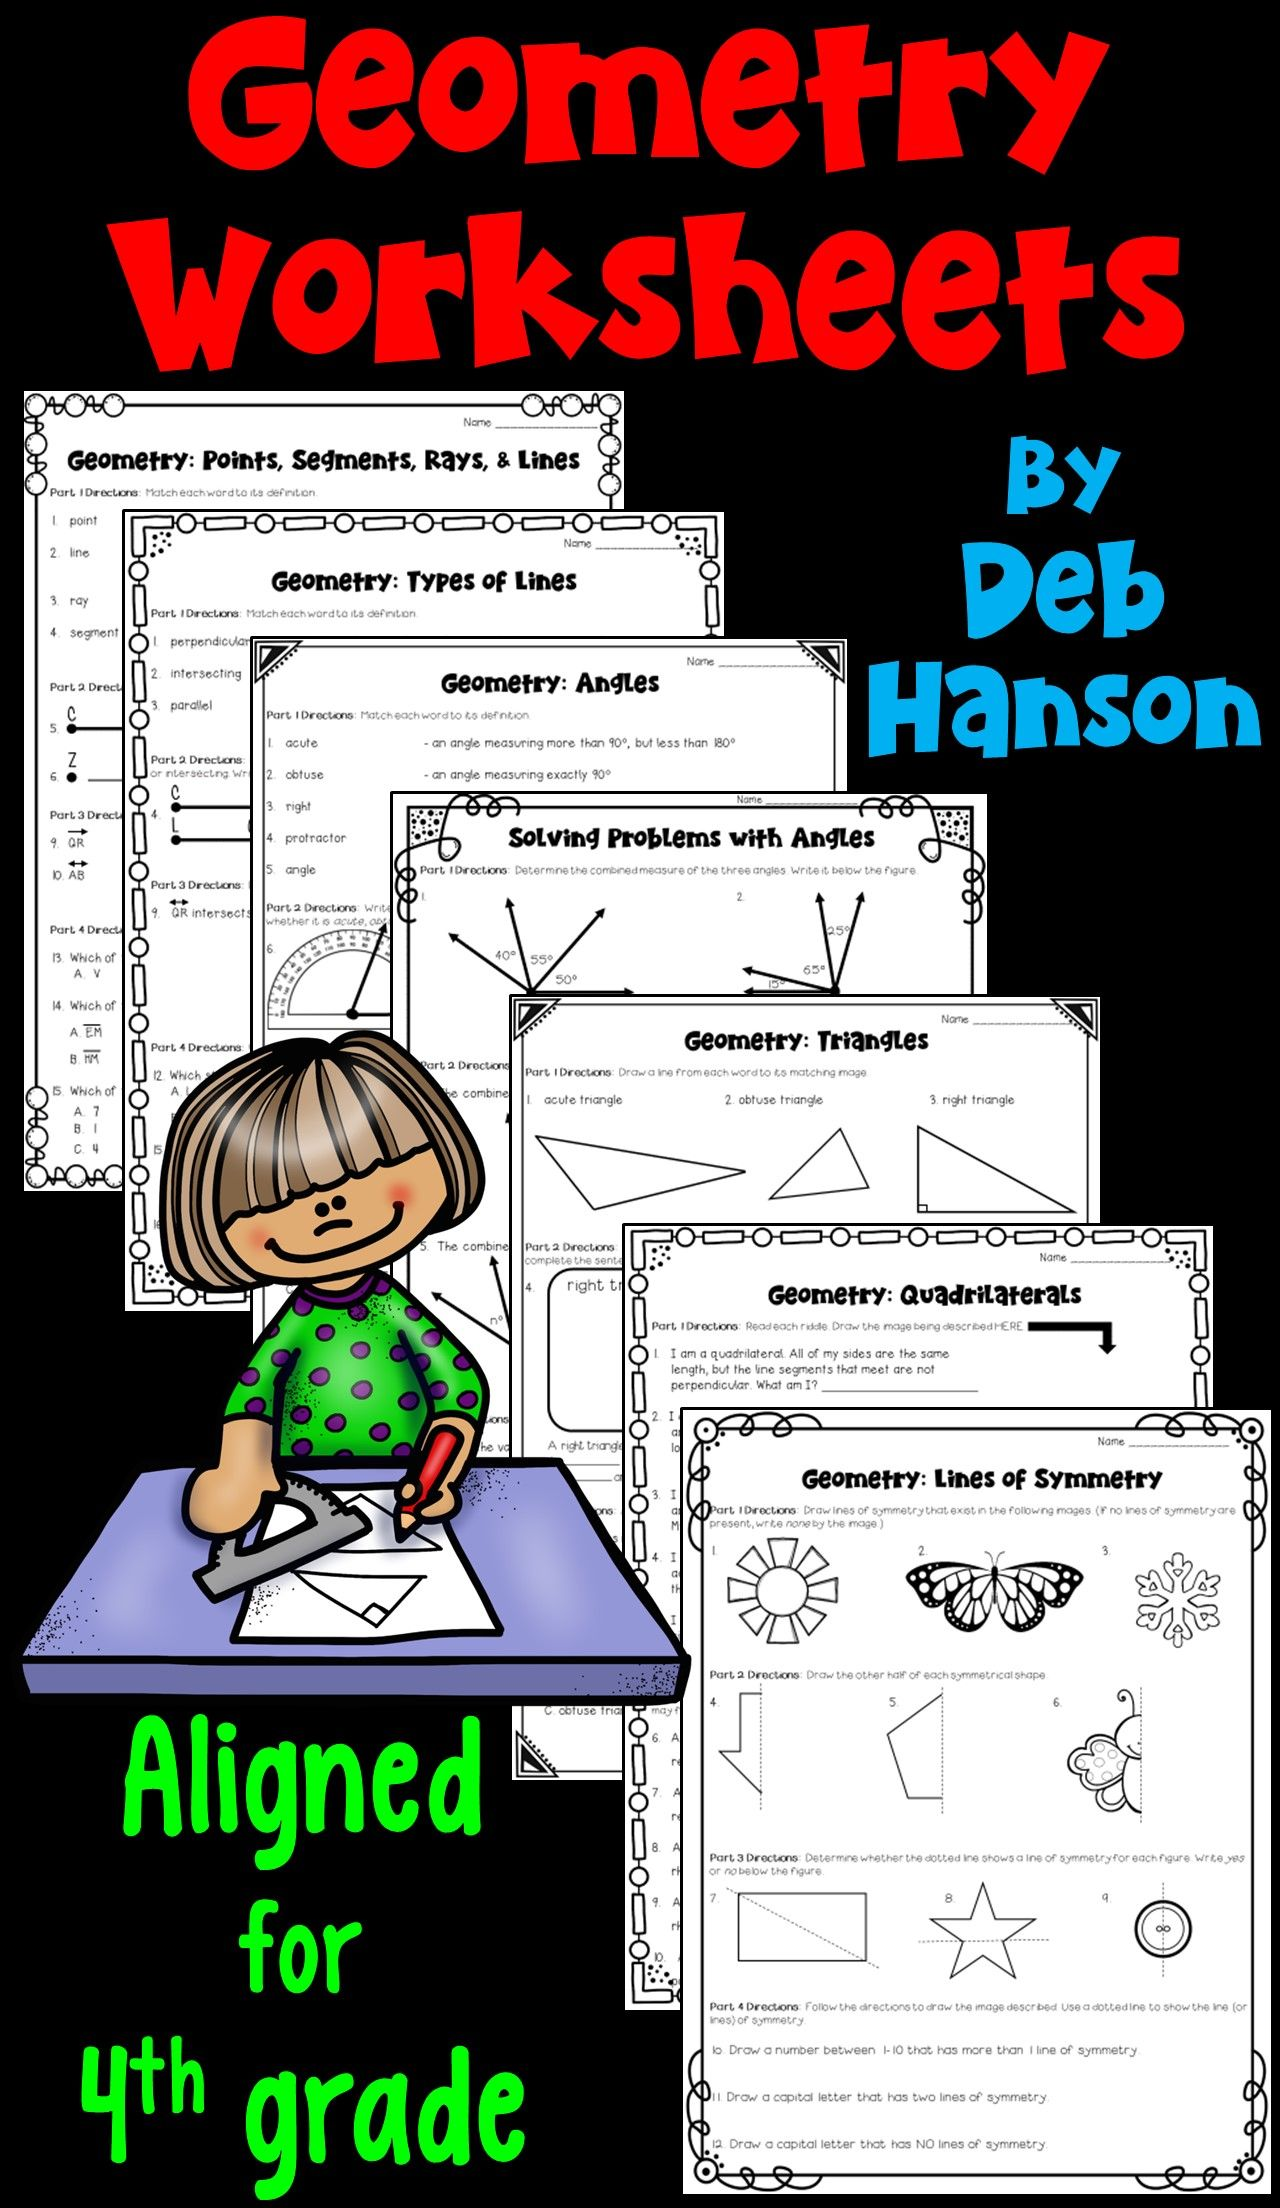 hight resolution of Geometry Worksheets for 4th grade! This set of 7 worksheets focus on lines